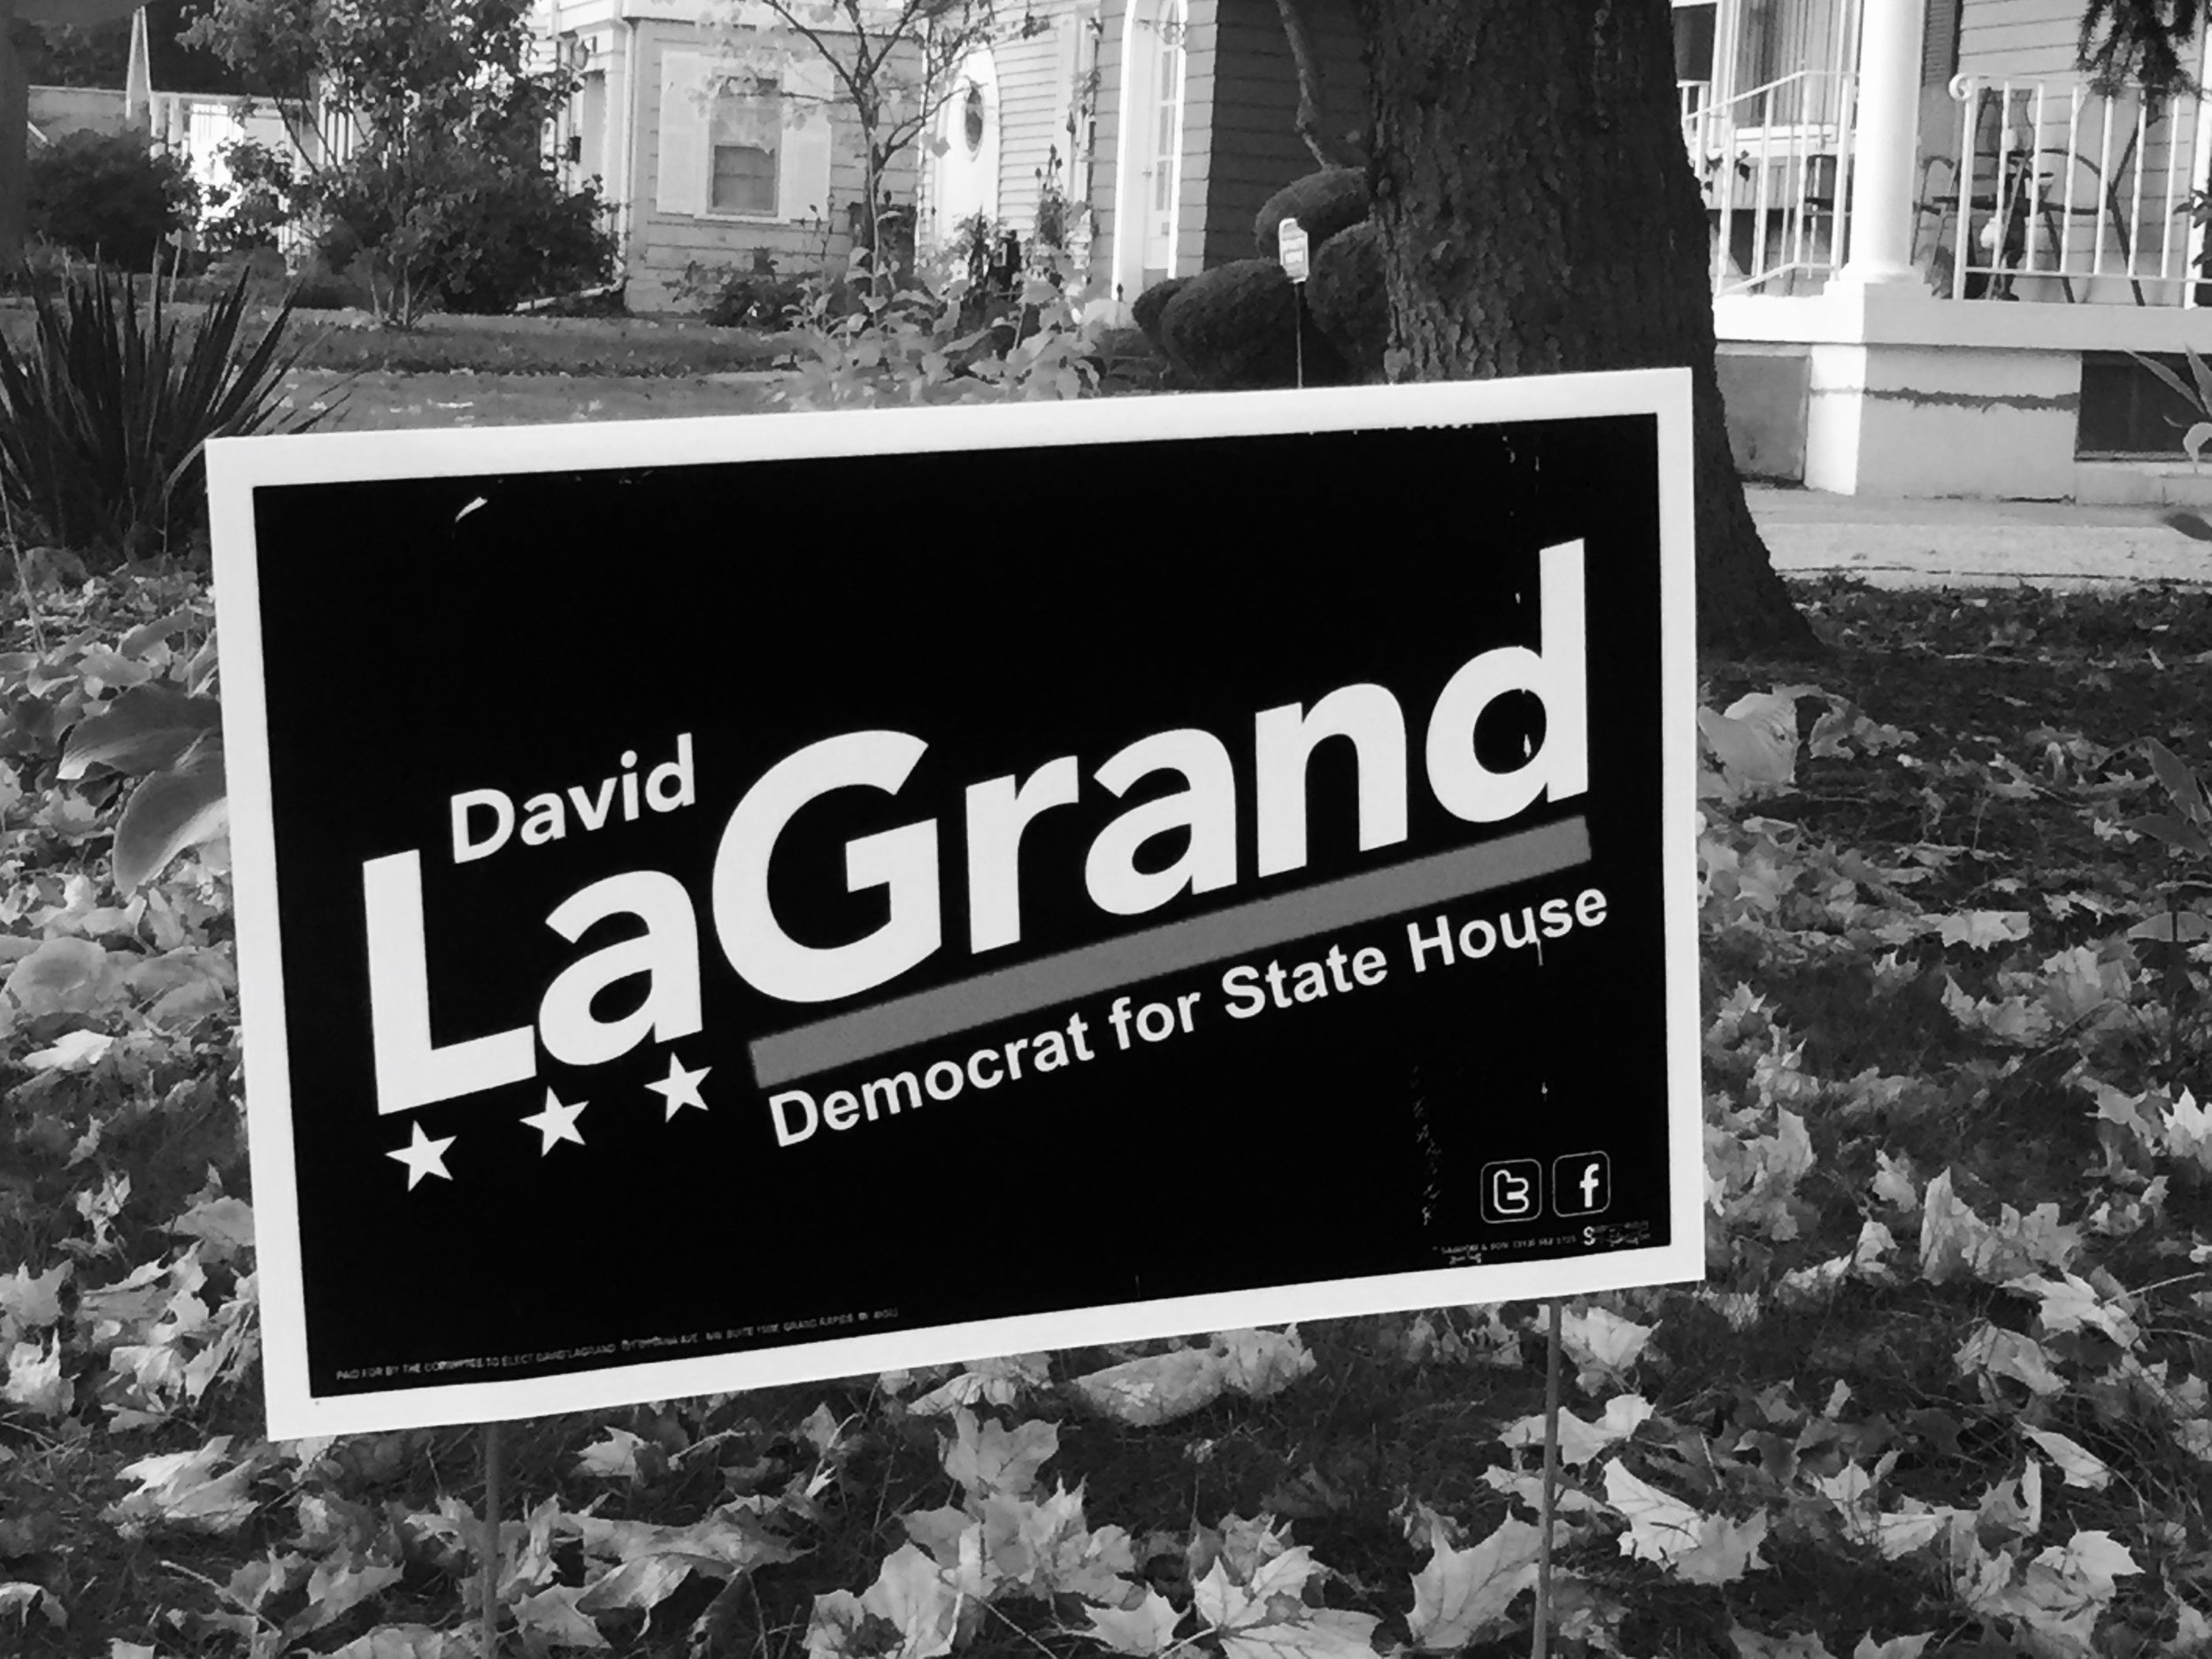 Representative David LaGrand is a son Grand Rapids seeking to get work done in Lansing on both sides of the aisle.